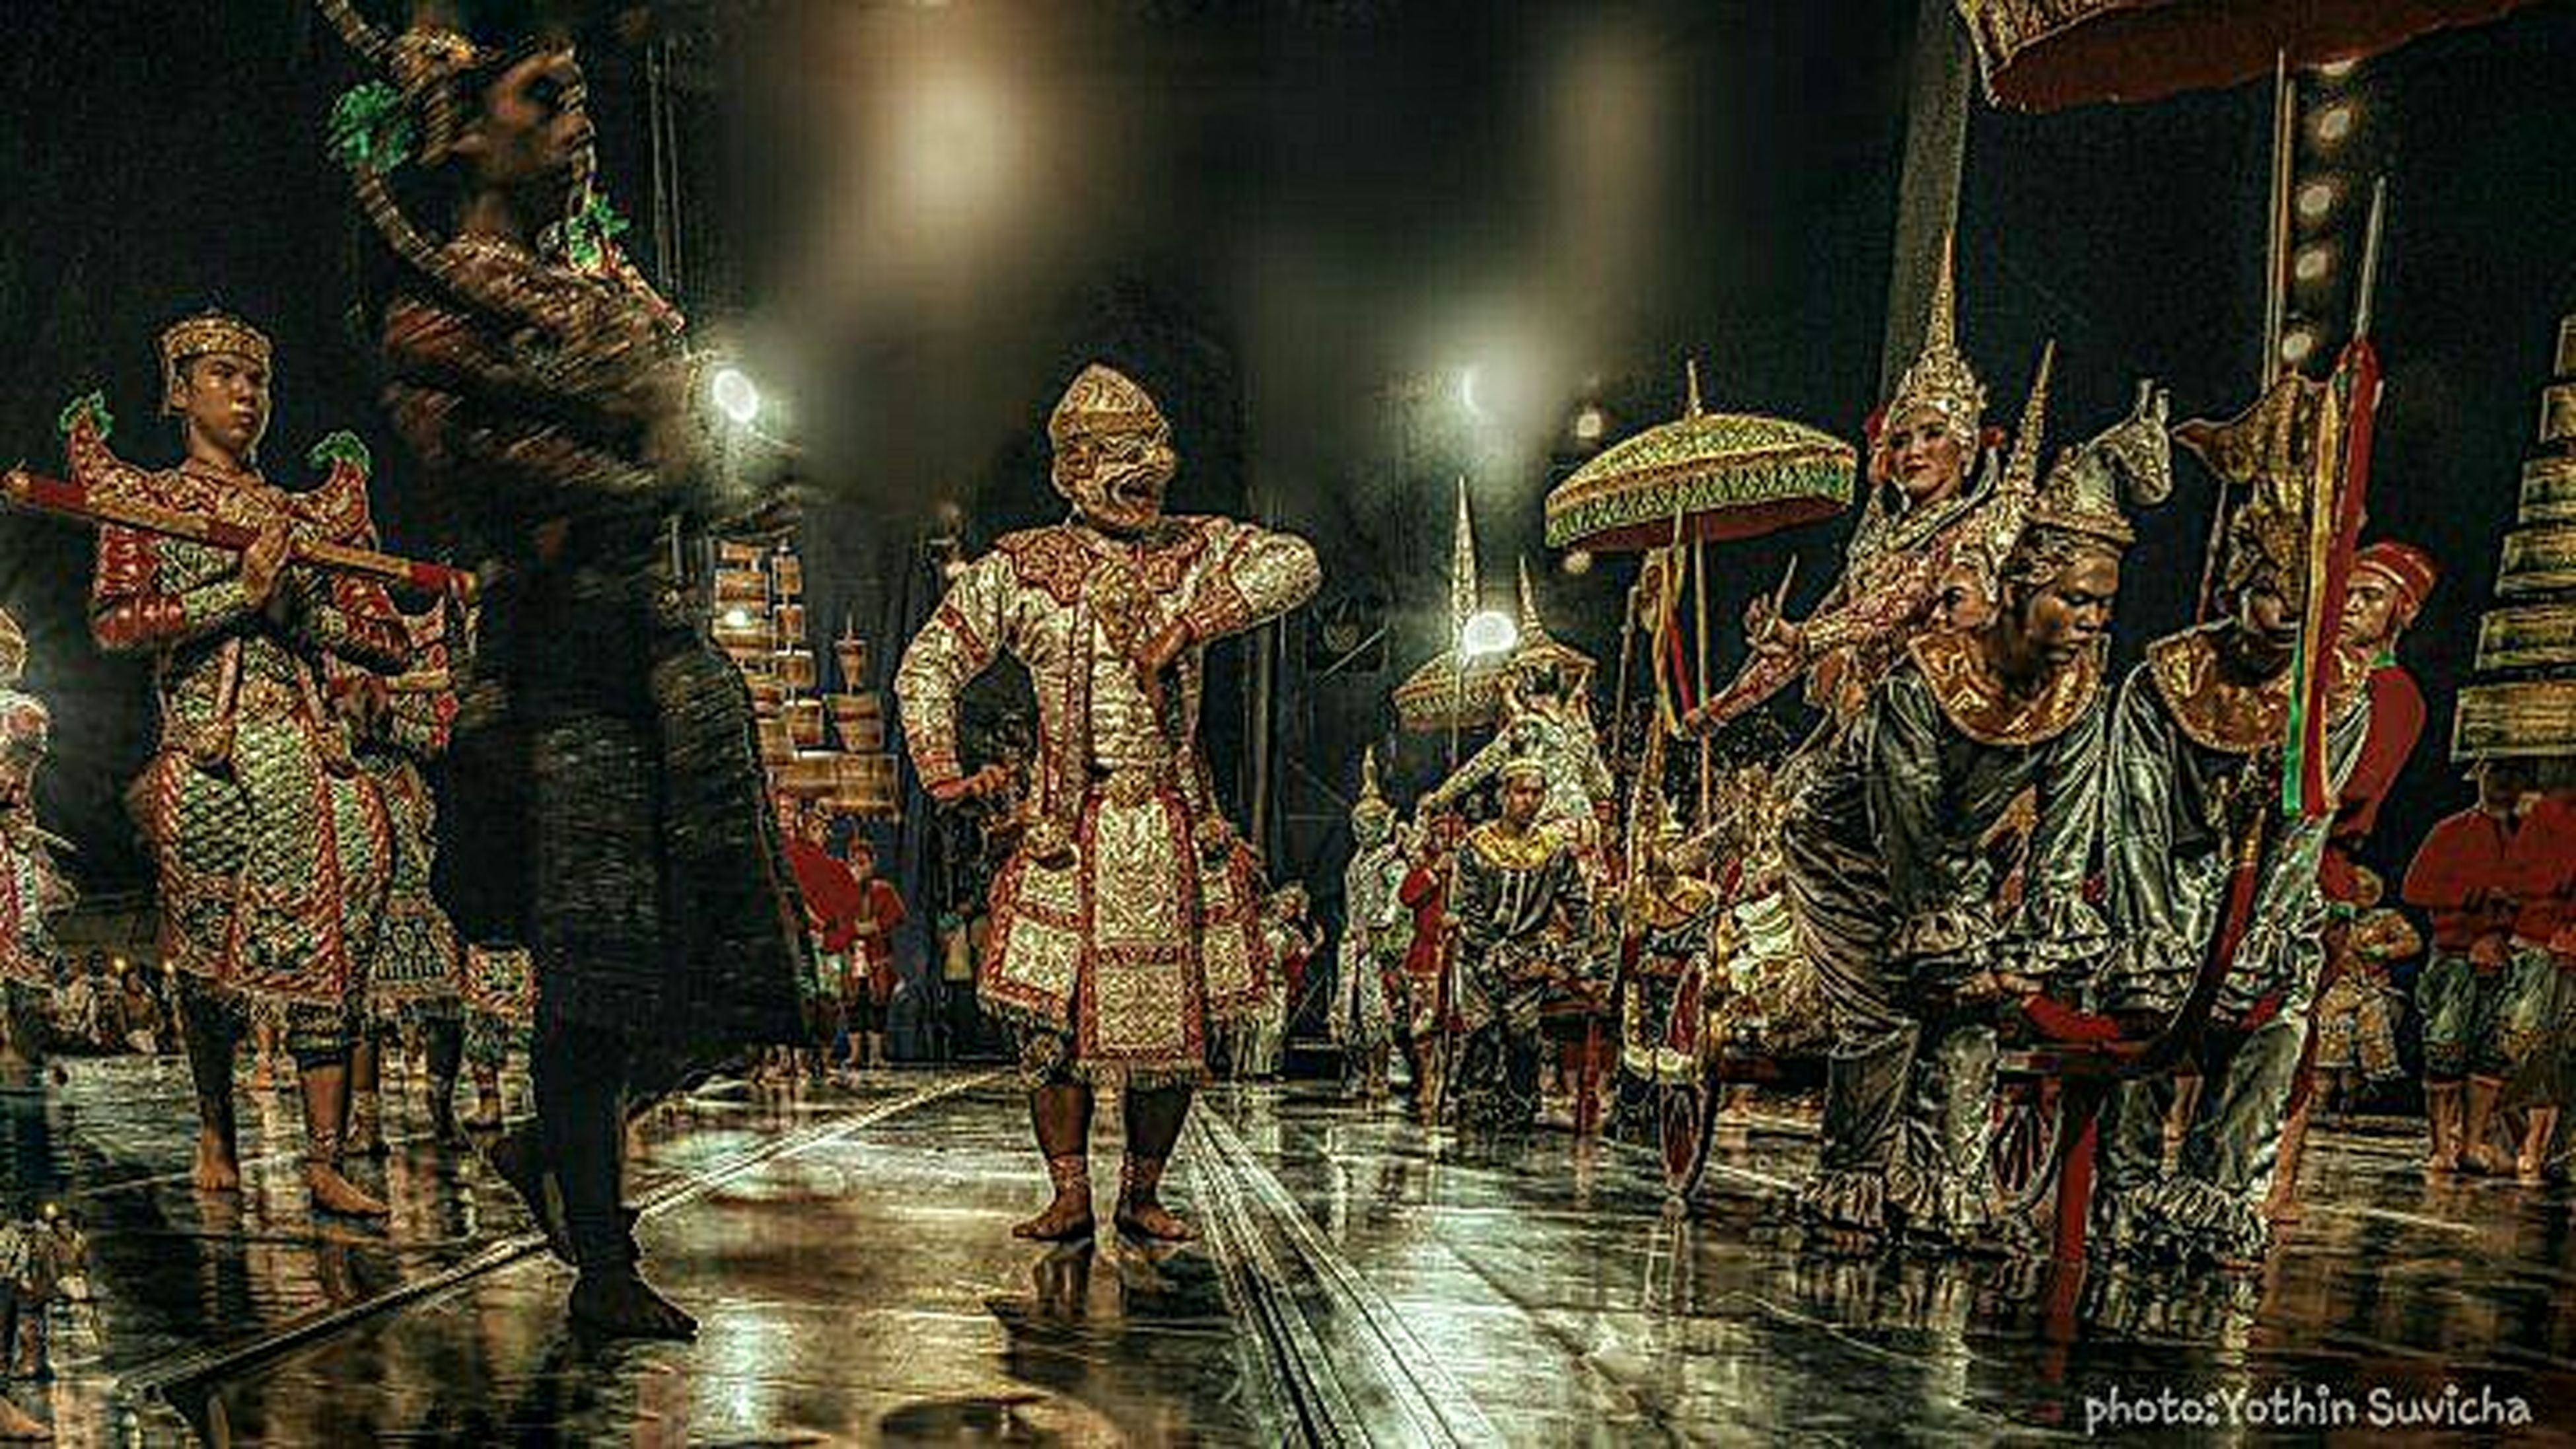 illuminated, night, built structure, water, reflection, lighting equipment, architecture, decoration, building exterior, street, hanging, in a row, outdoors, incidental people, street light, market, celebration, large group of objects, cultures, city